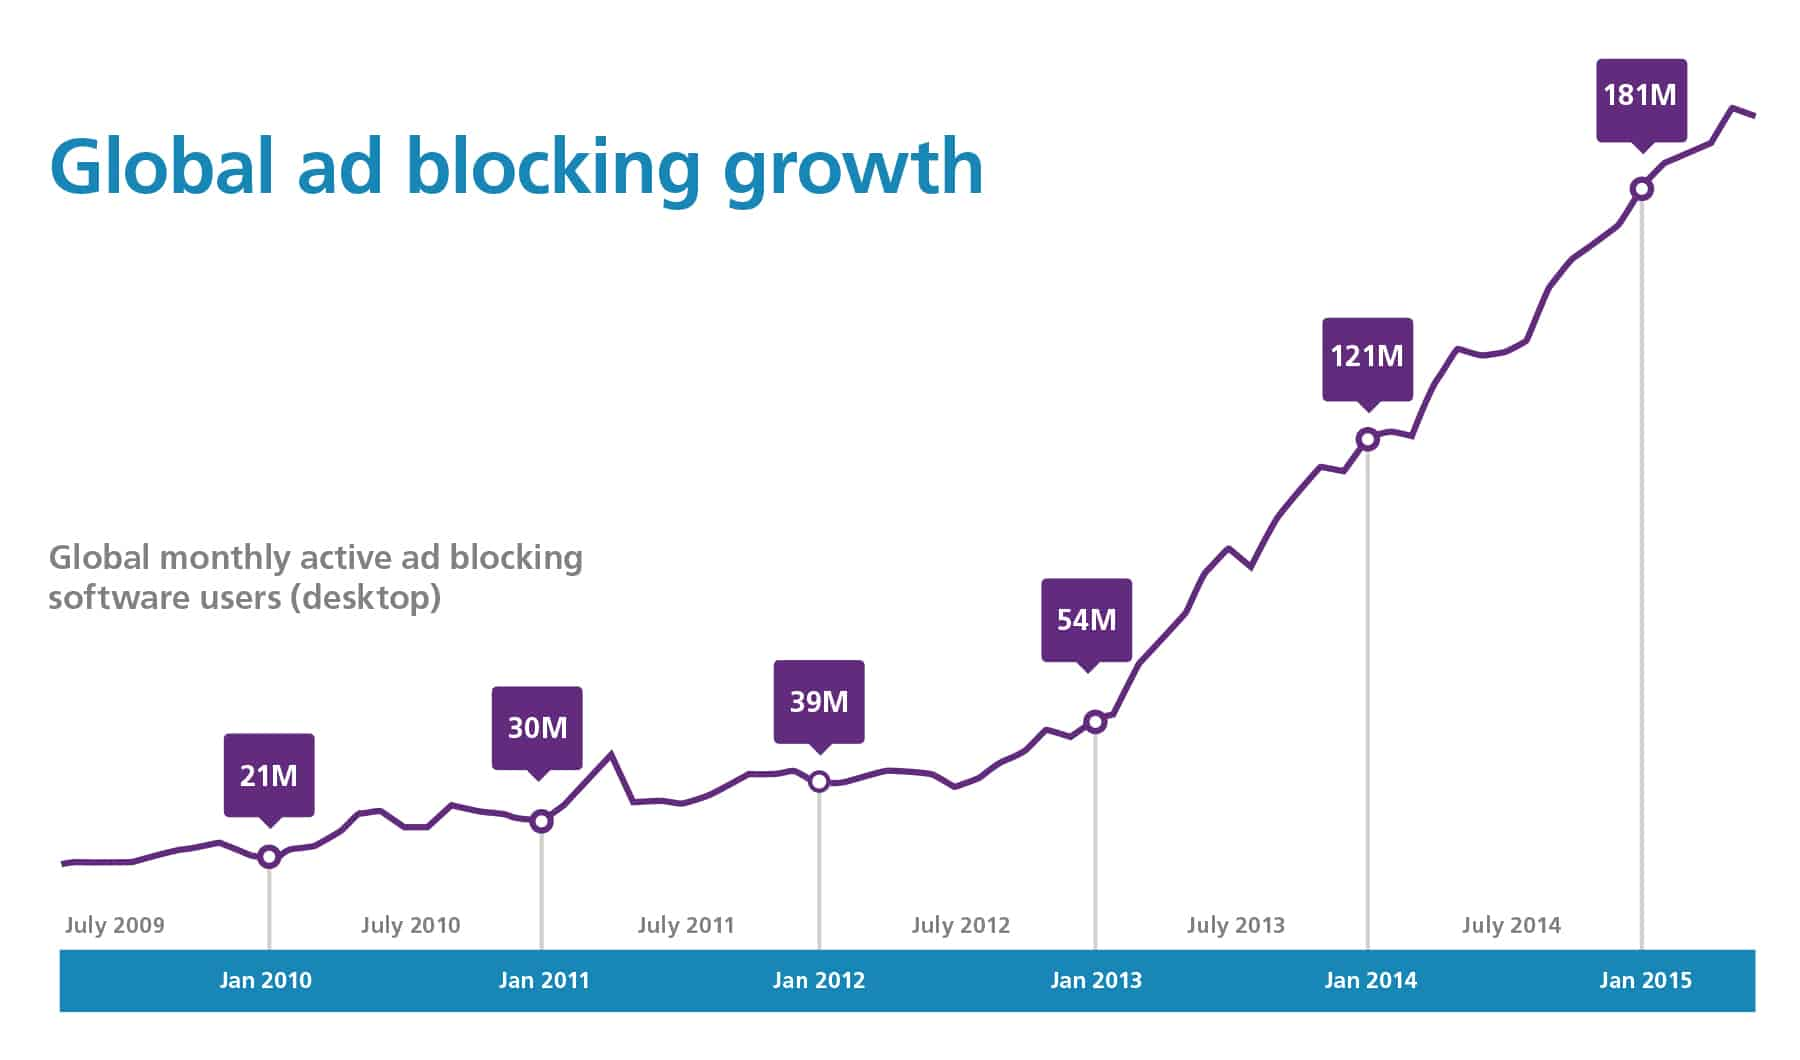 Chart showing growth of global ad blocking